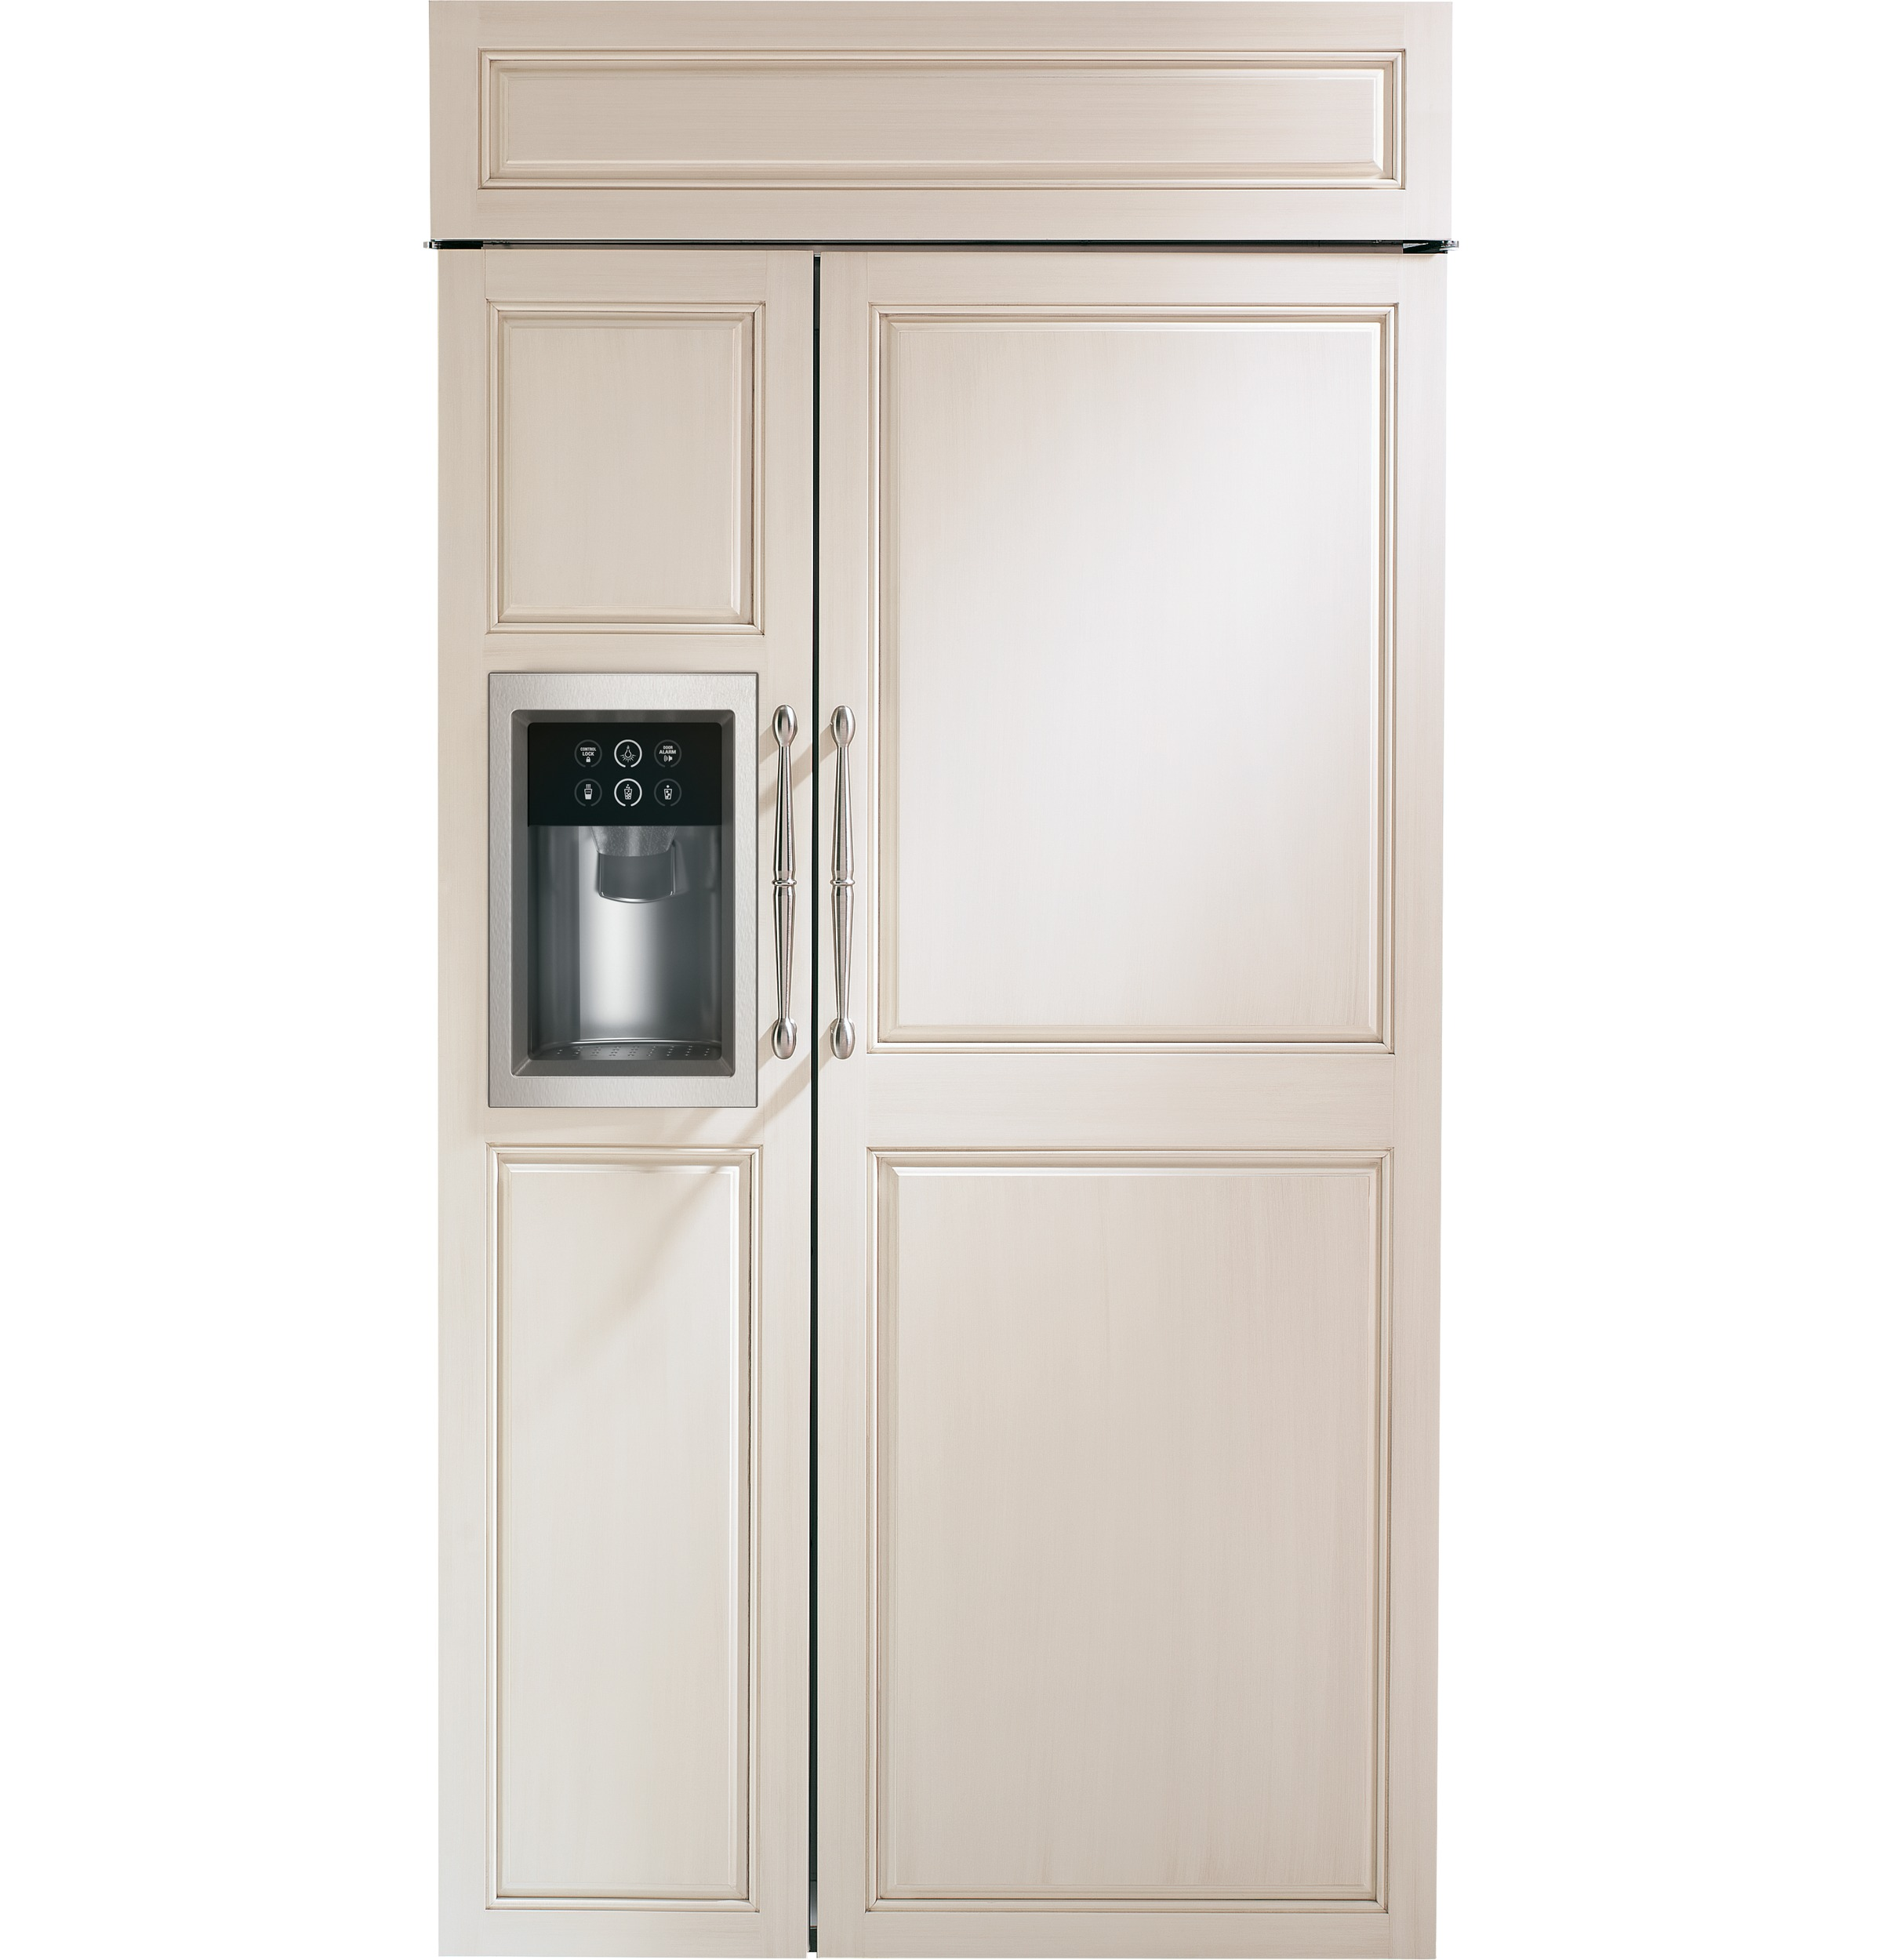 "Monogram Monogram 42"" Built-In Side-by-Side Refrigerator with Dispenser"